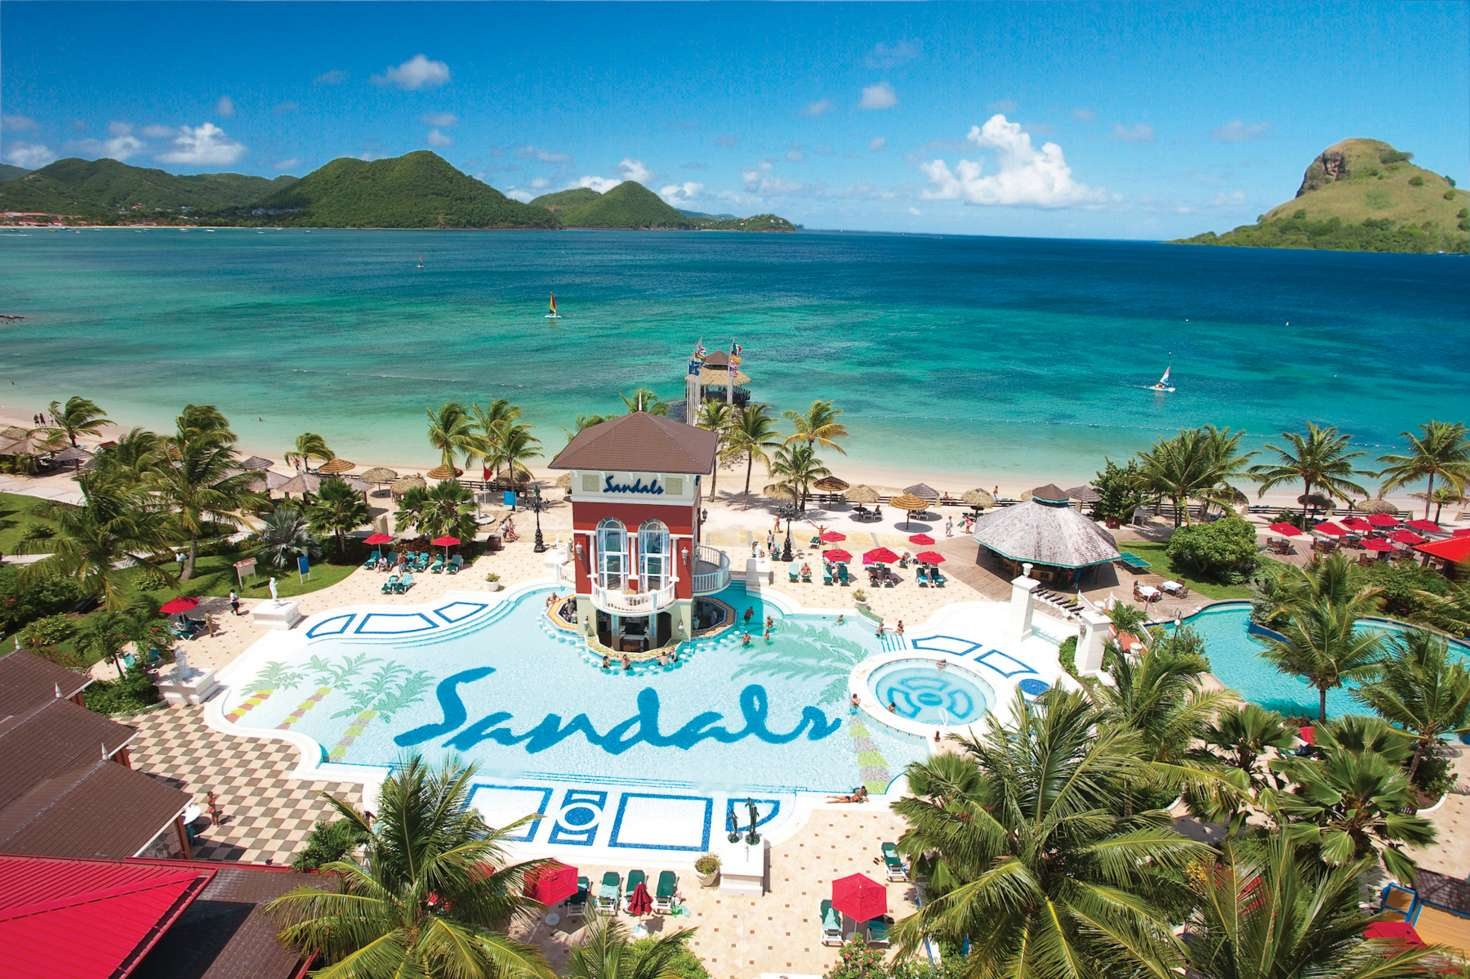 Sandals Grande St. Lucian Spa & Beach Resort, Gros Islet, St Lucia